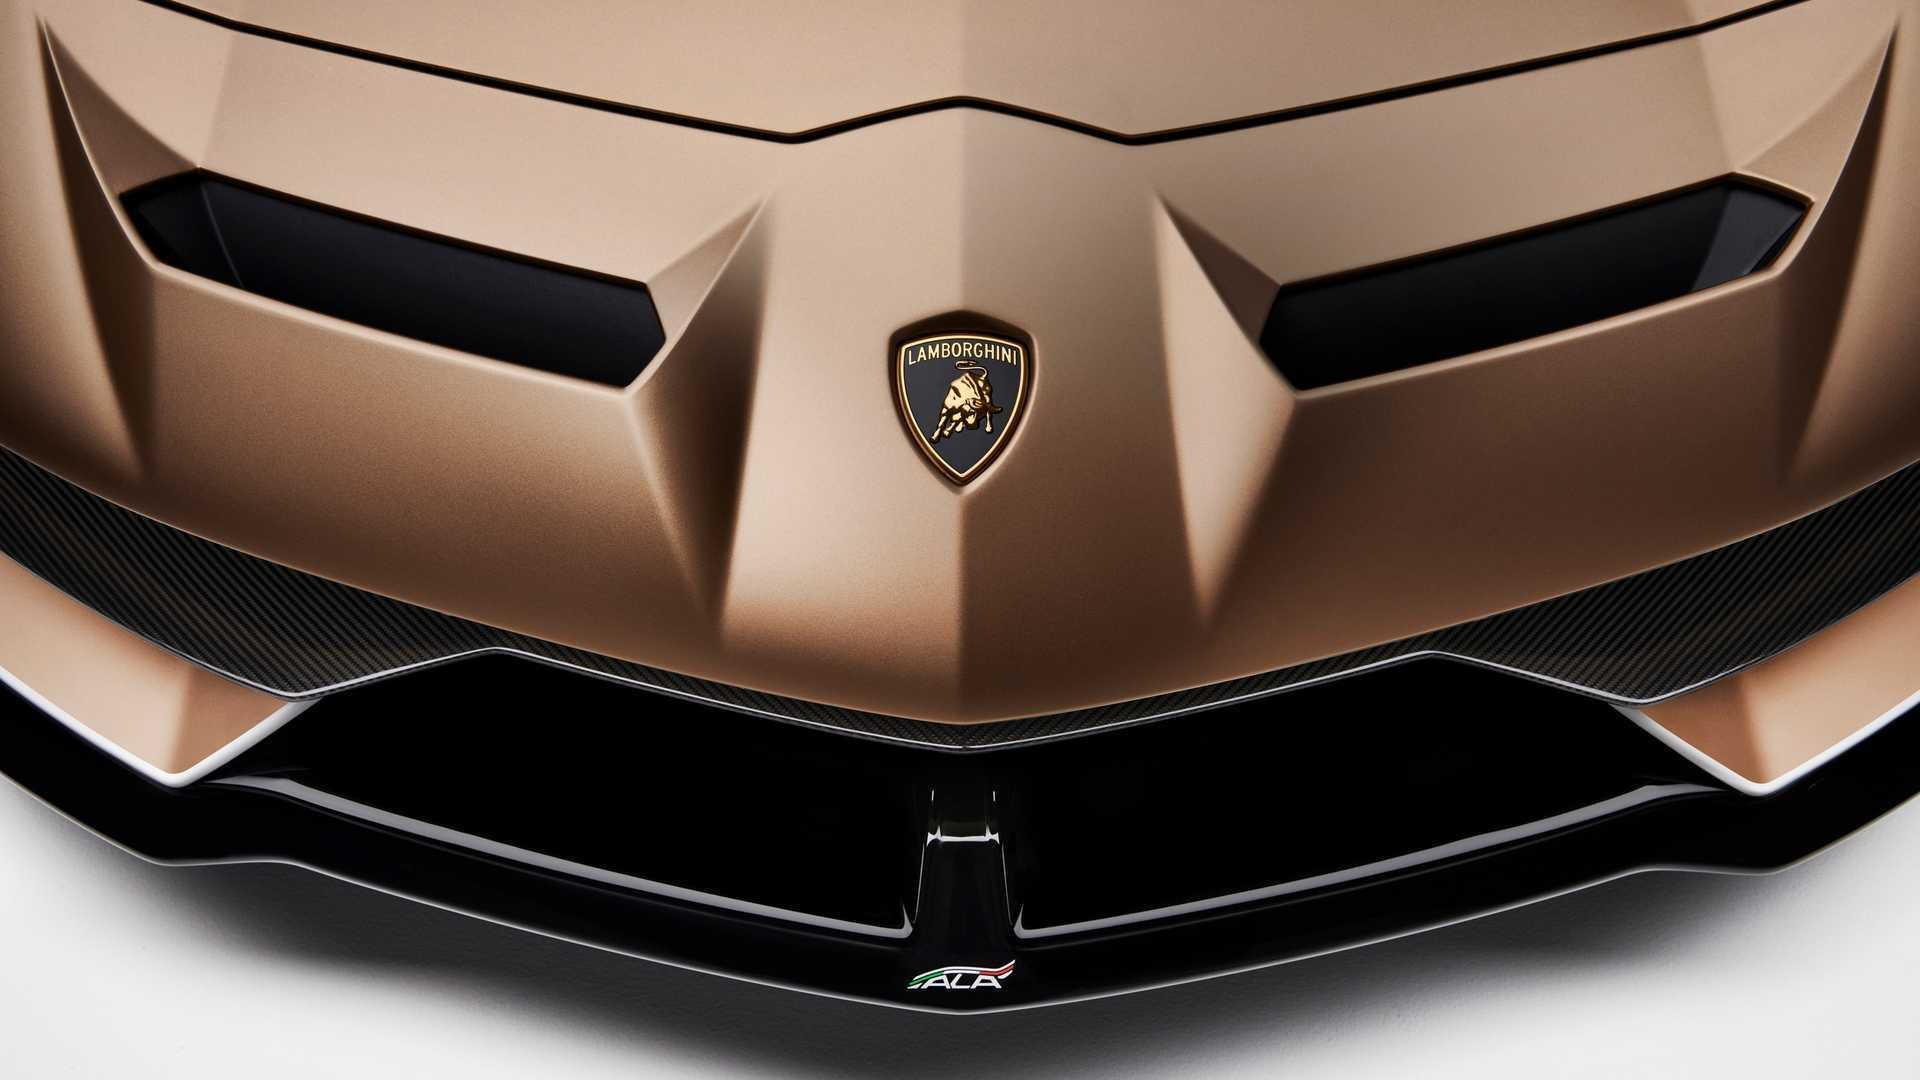 """The Italian supercar maker has posted a teaser photo promising to reveal something unique and """"ahead of its time"""". The event will be broadcast online at 16:00 UTC on July 8, 2020."""